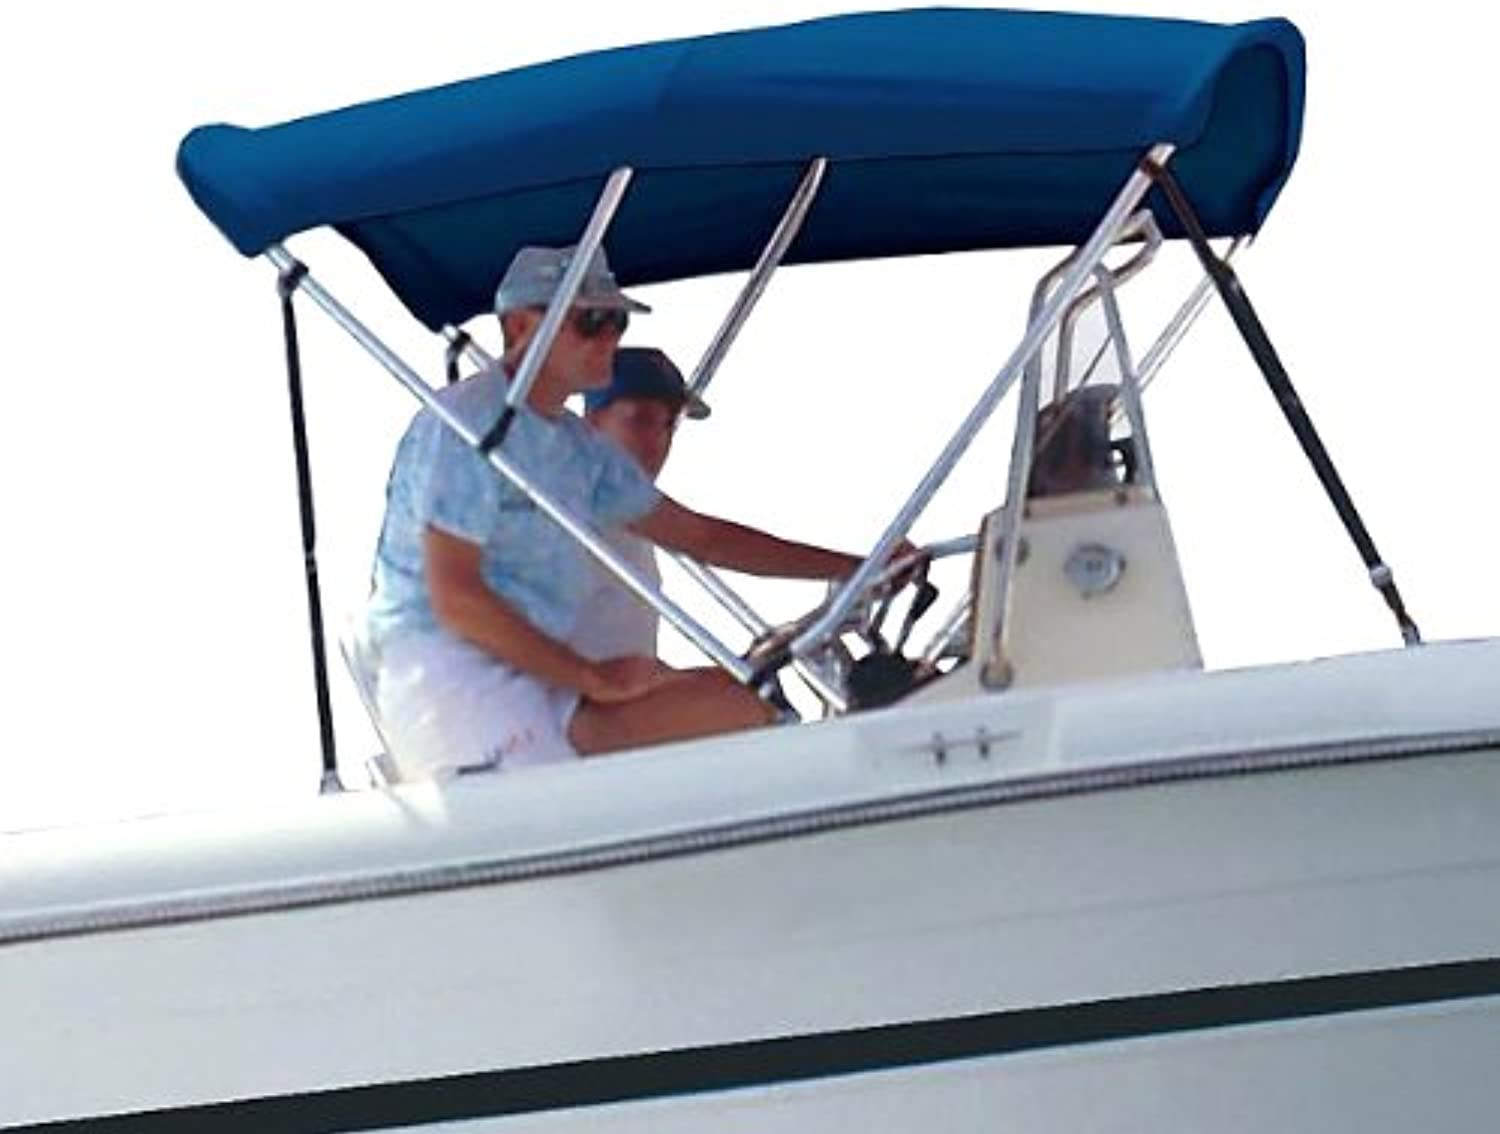 Survivor Marine Products Bimini Top (Fabric Only), Navy, 6Feet Length x 54Inch Height x 6772Inch Width